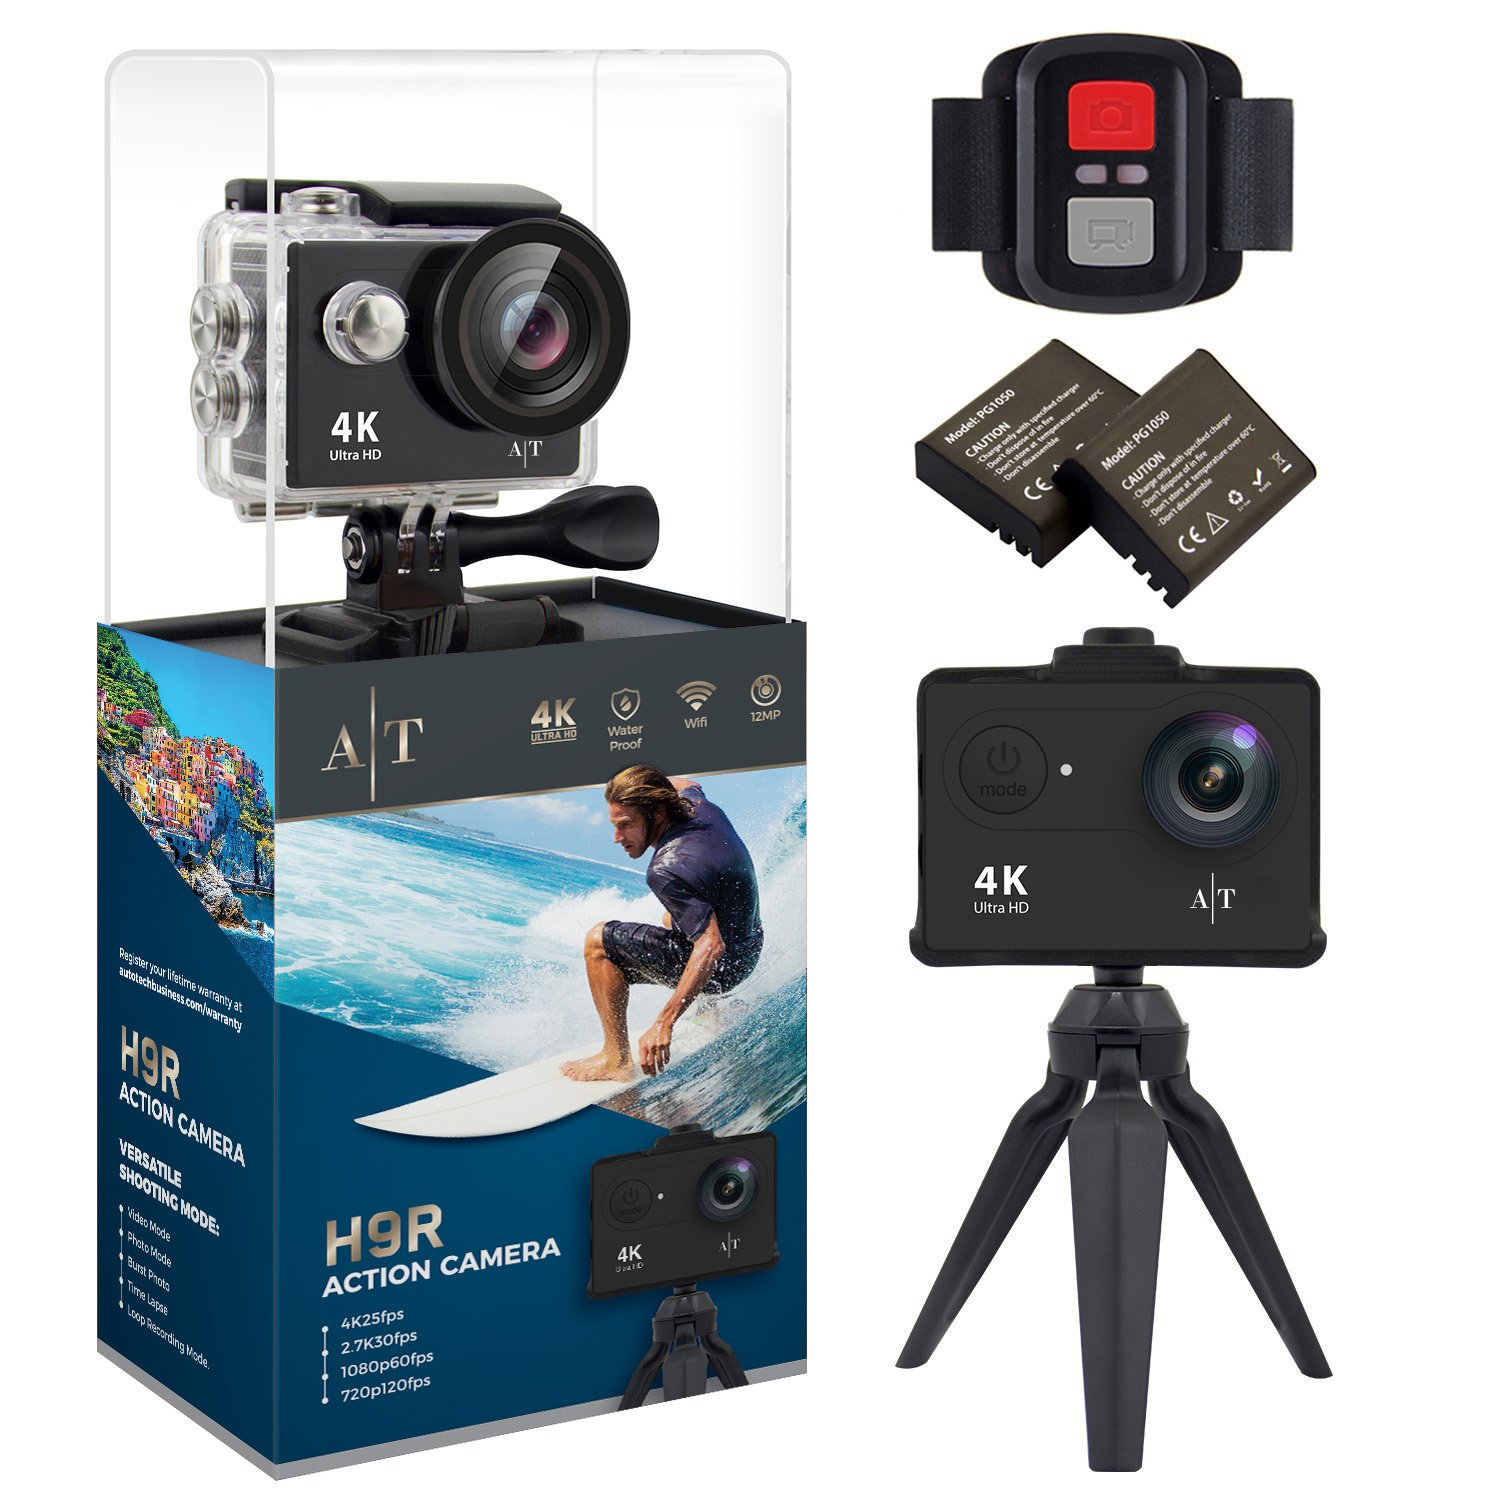 Auto Tech H9S Action Camera 4K Waterproof Wifi Sports Camera Full HD 4K 25FPS 2.7K 30fps 1080P 60fps Video Camera 12MP Photo, 170 Wide Angle Lens Includes 11 Mountings Kit 2 Batteries |Just Like GoPro by Auto Tech